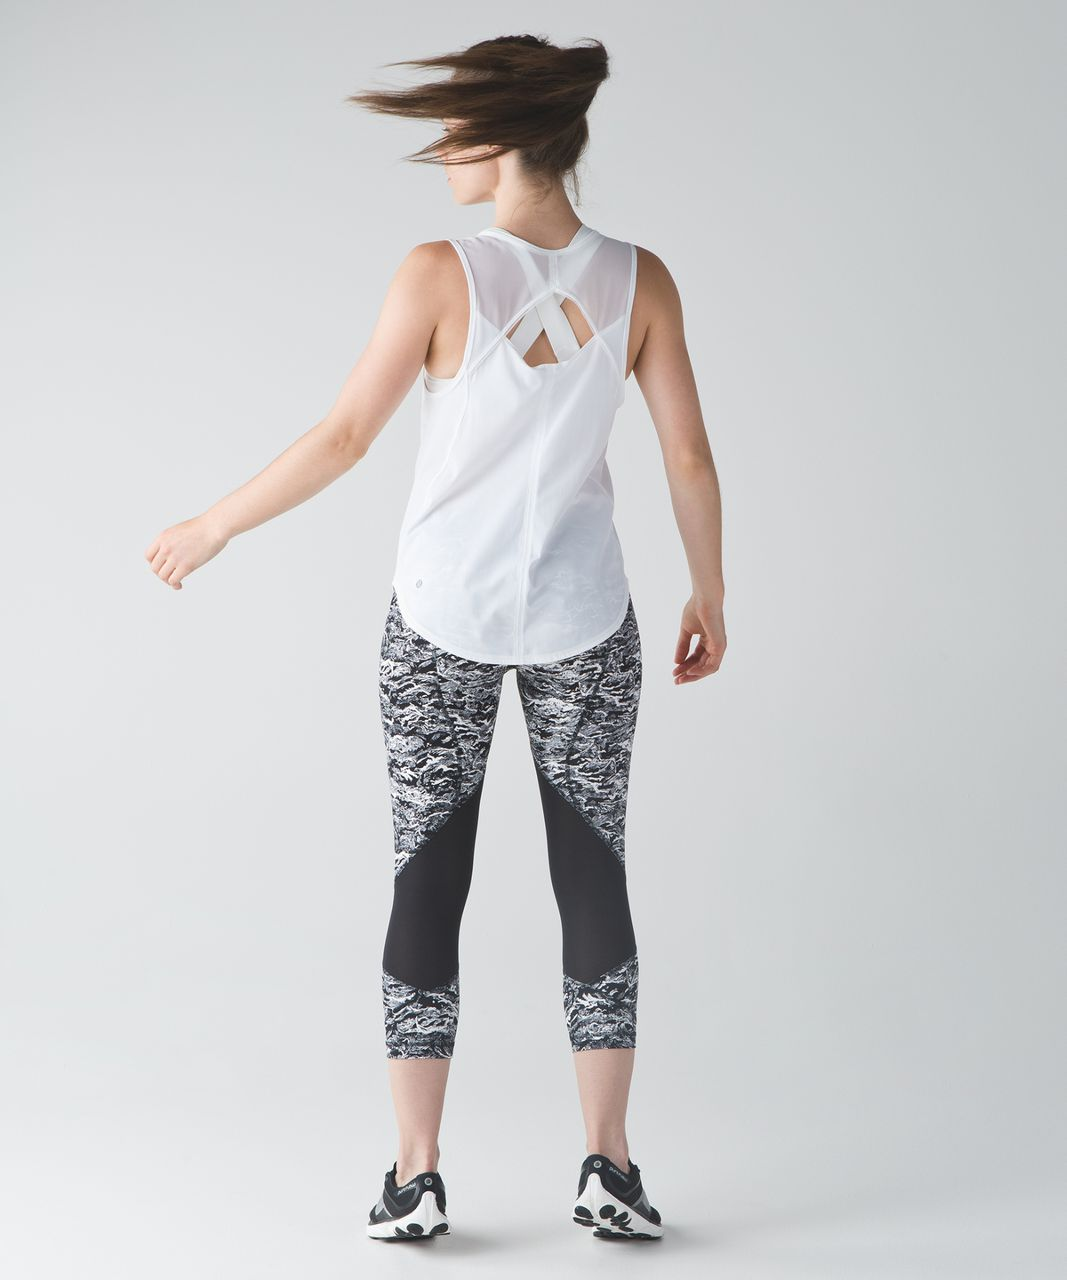 Lululemon Pace Rival Crop - Nami Wave White Black